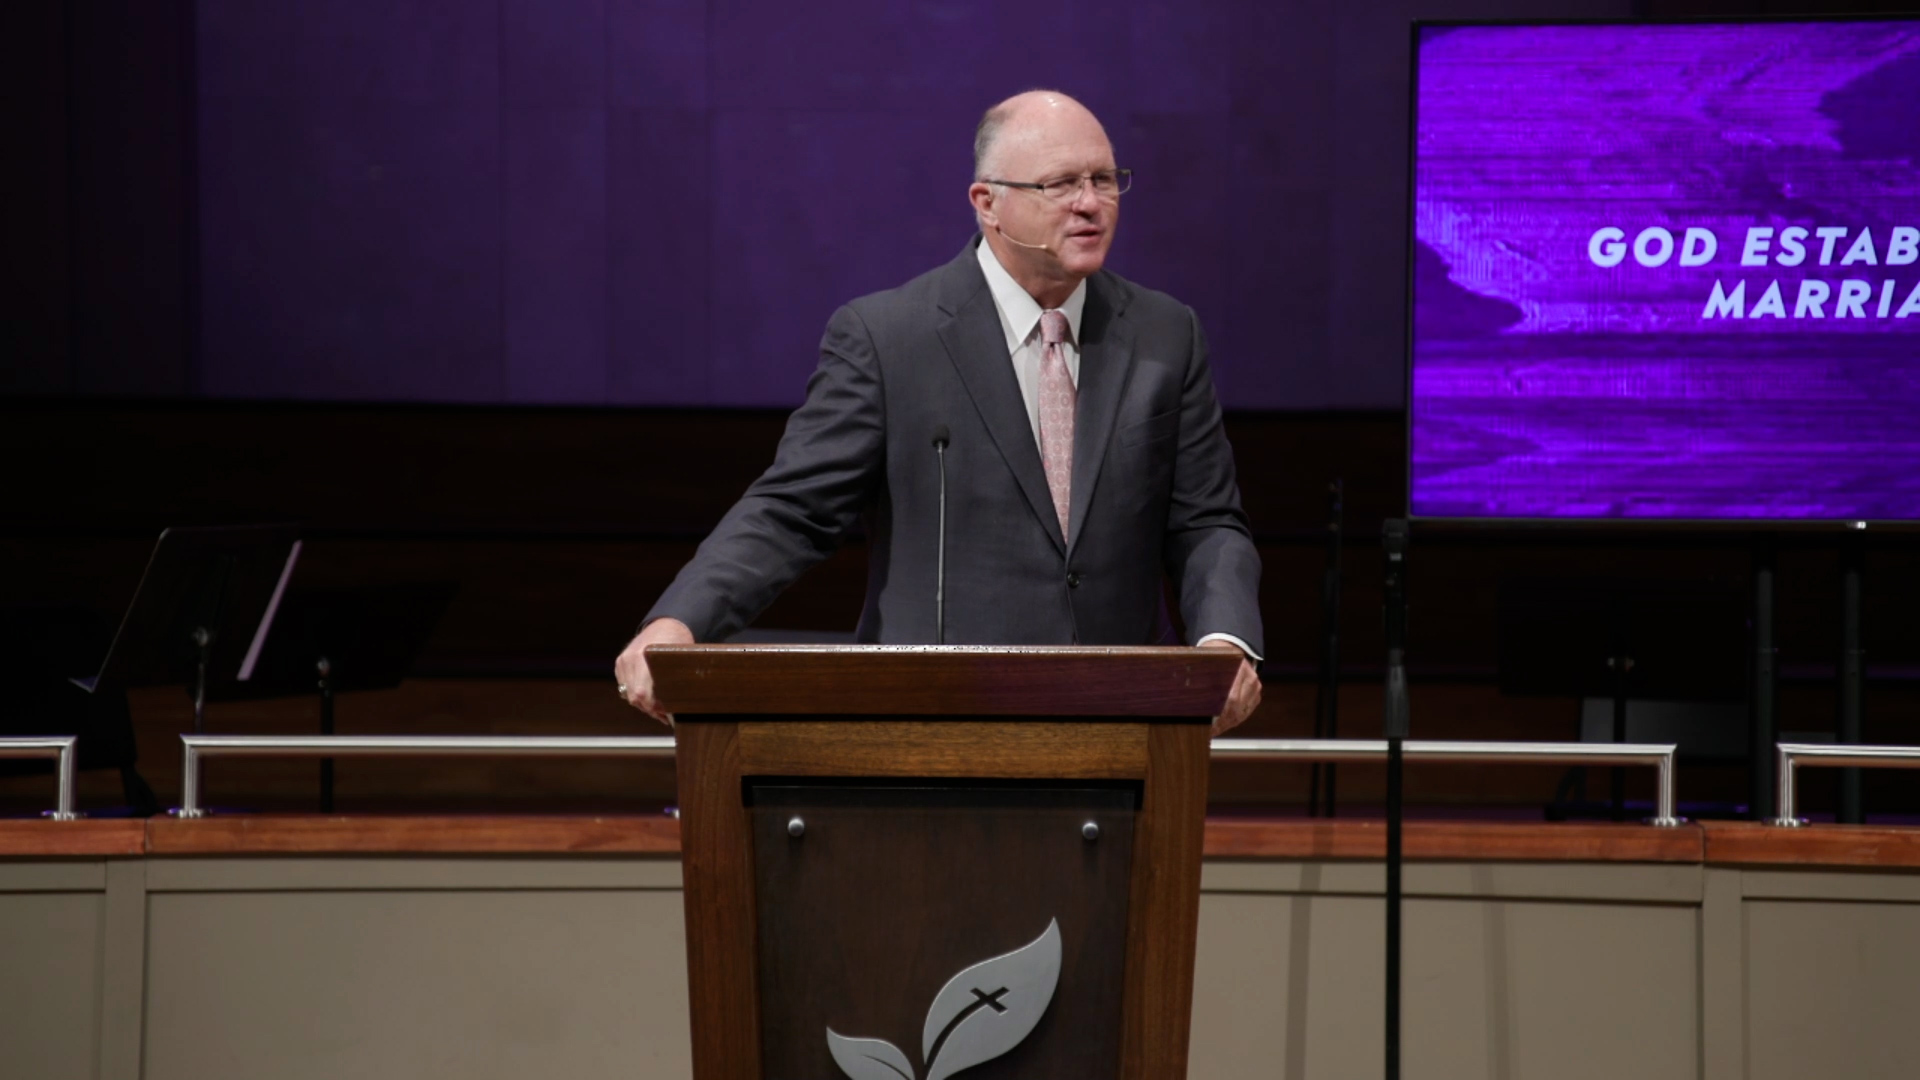 Pastor Paul Chappell: The Distinctiveness of Gender and Marriage